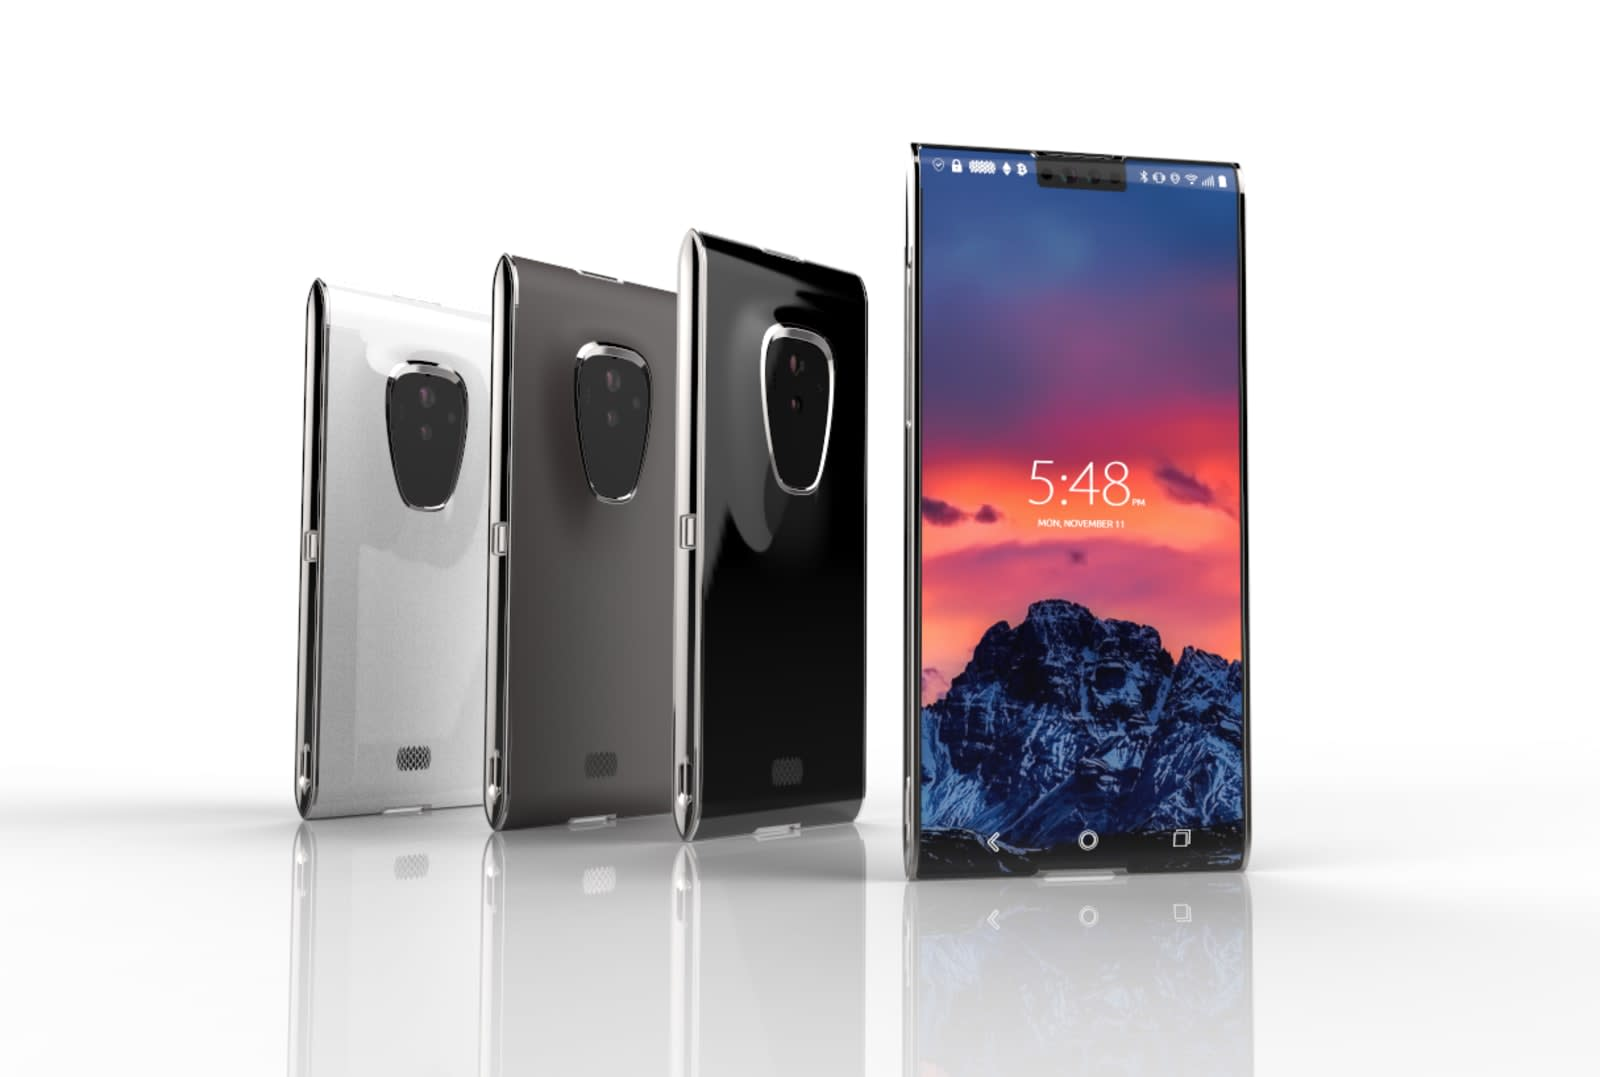 The world's first blockchain smartphone is in development